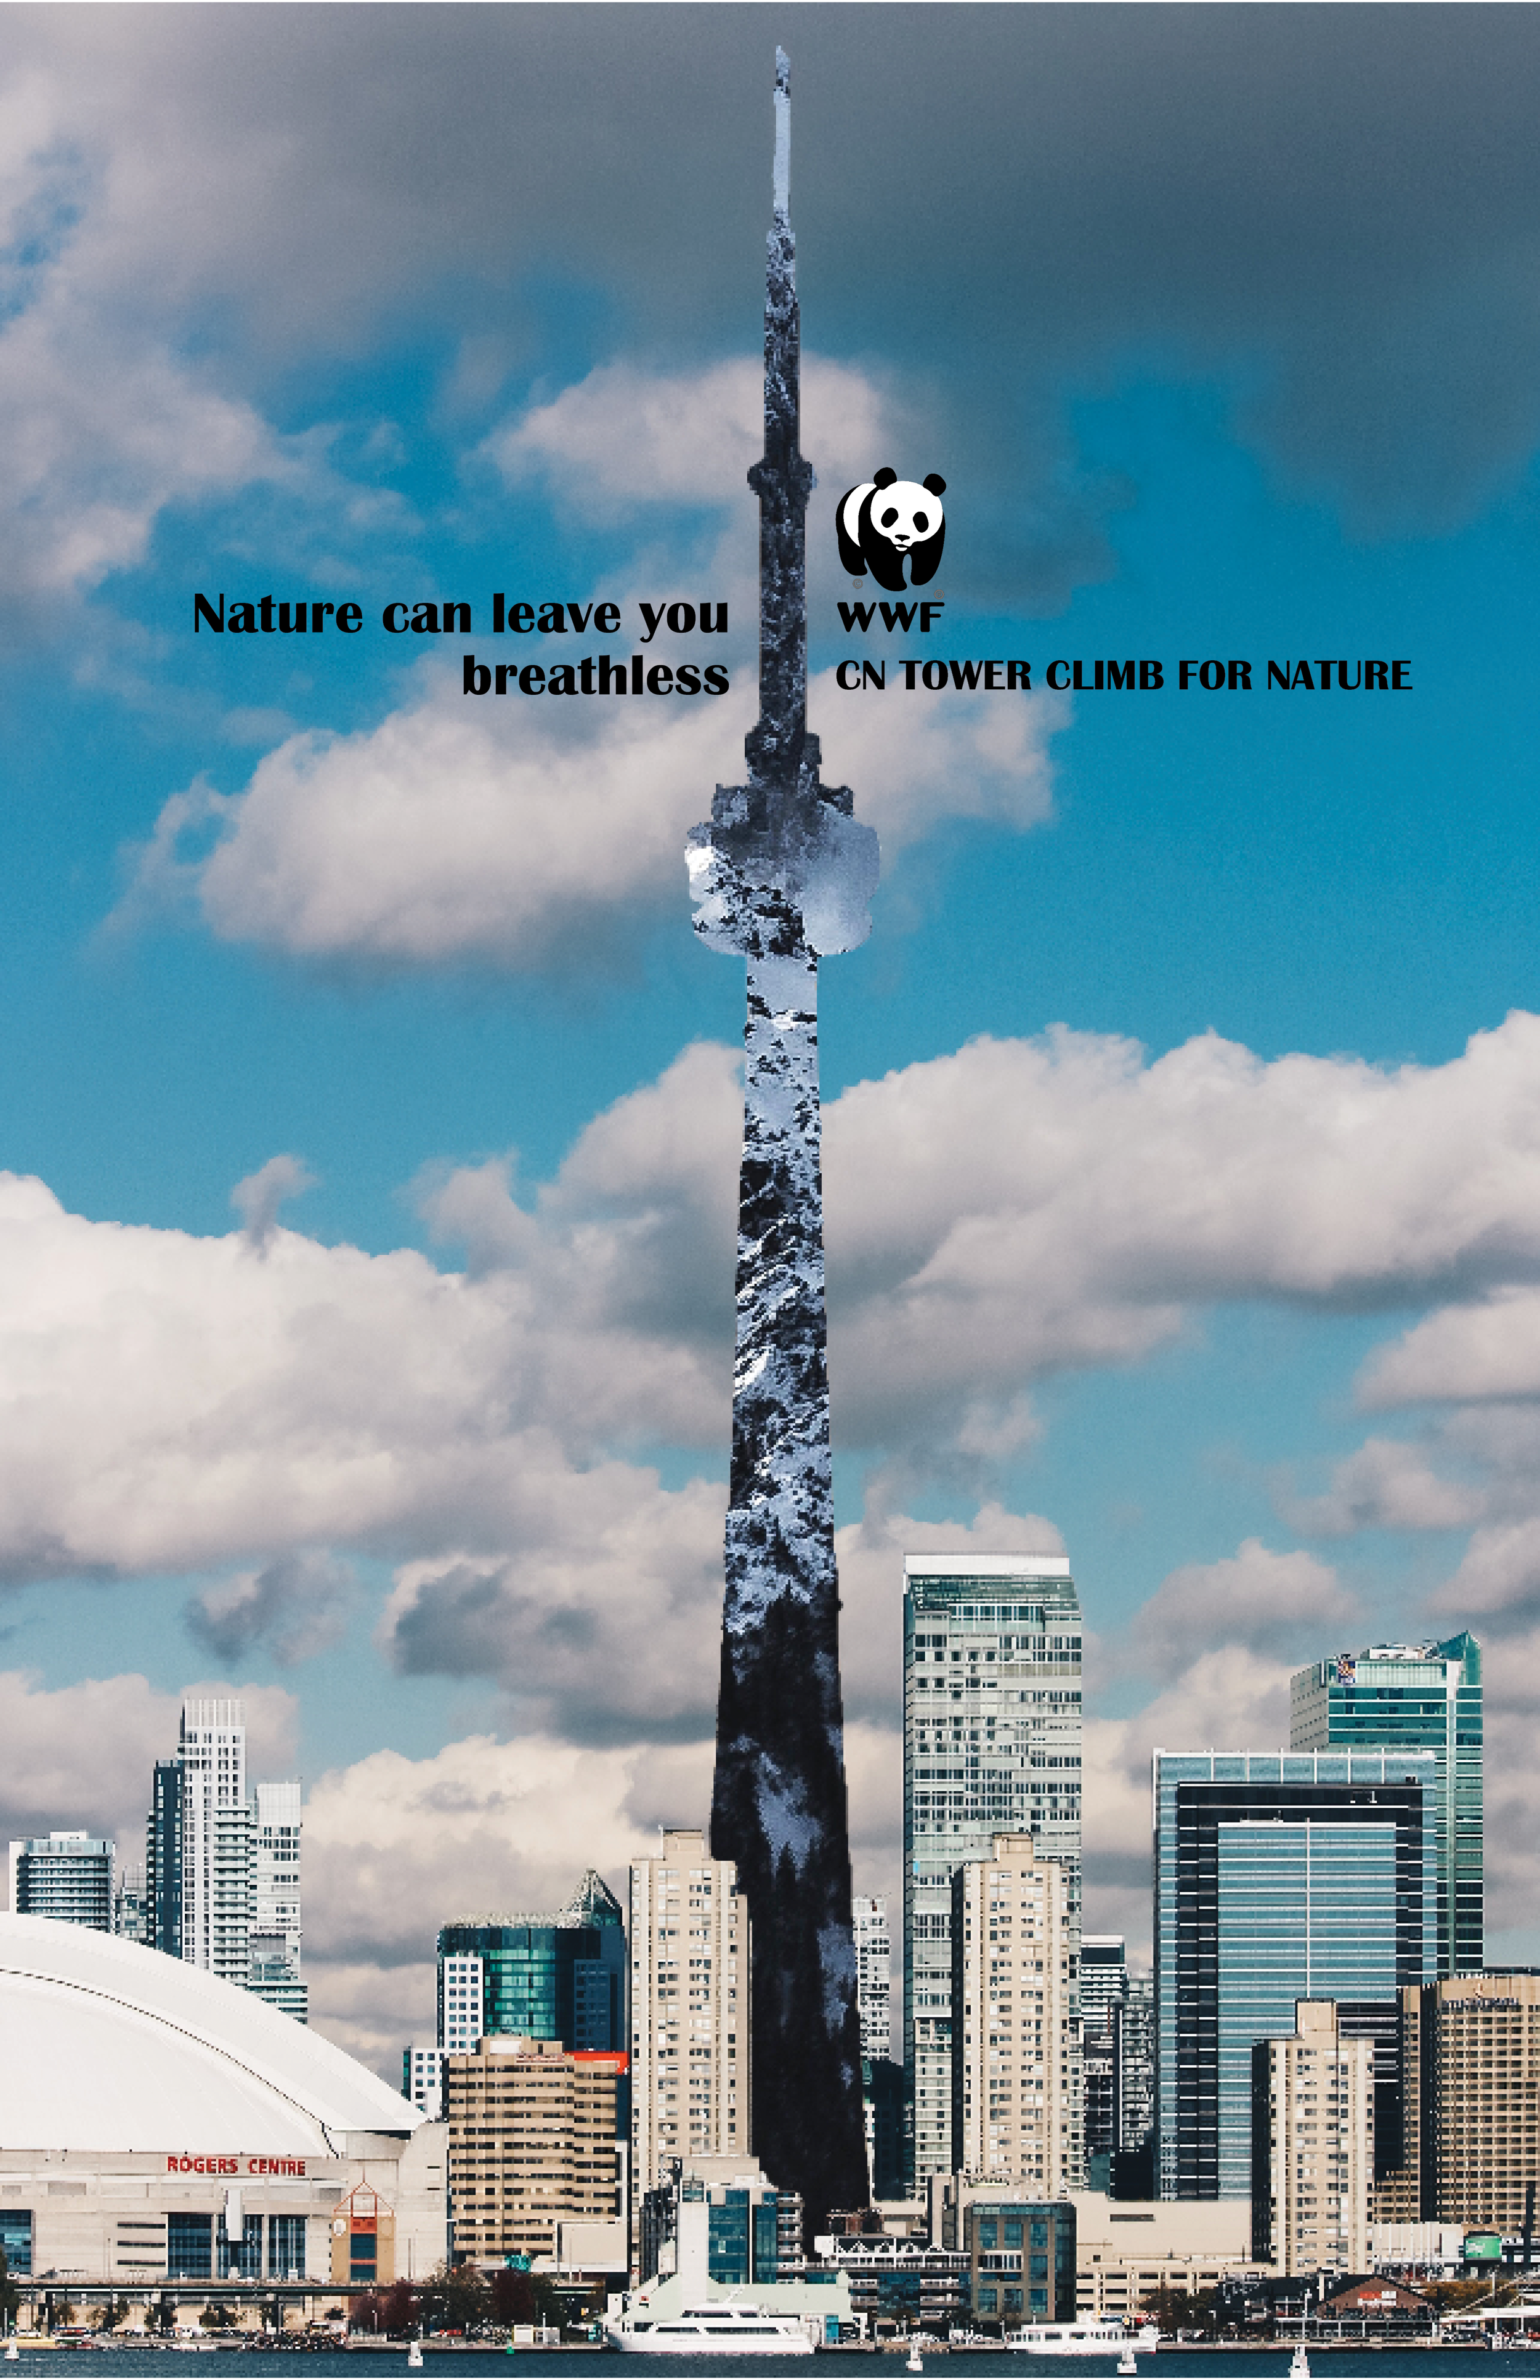 wwf - mt cn tower.png